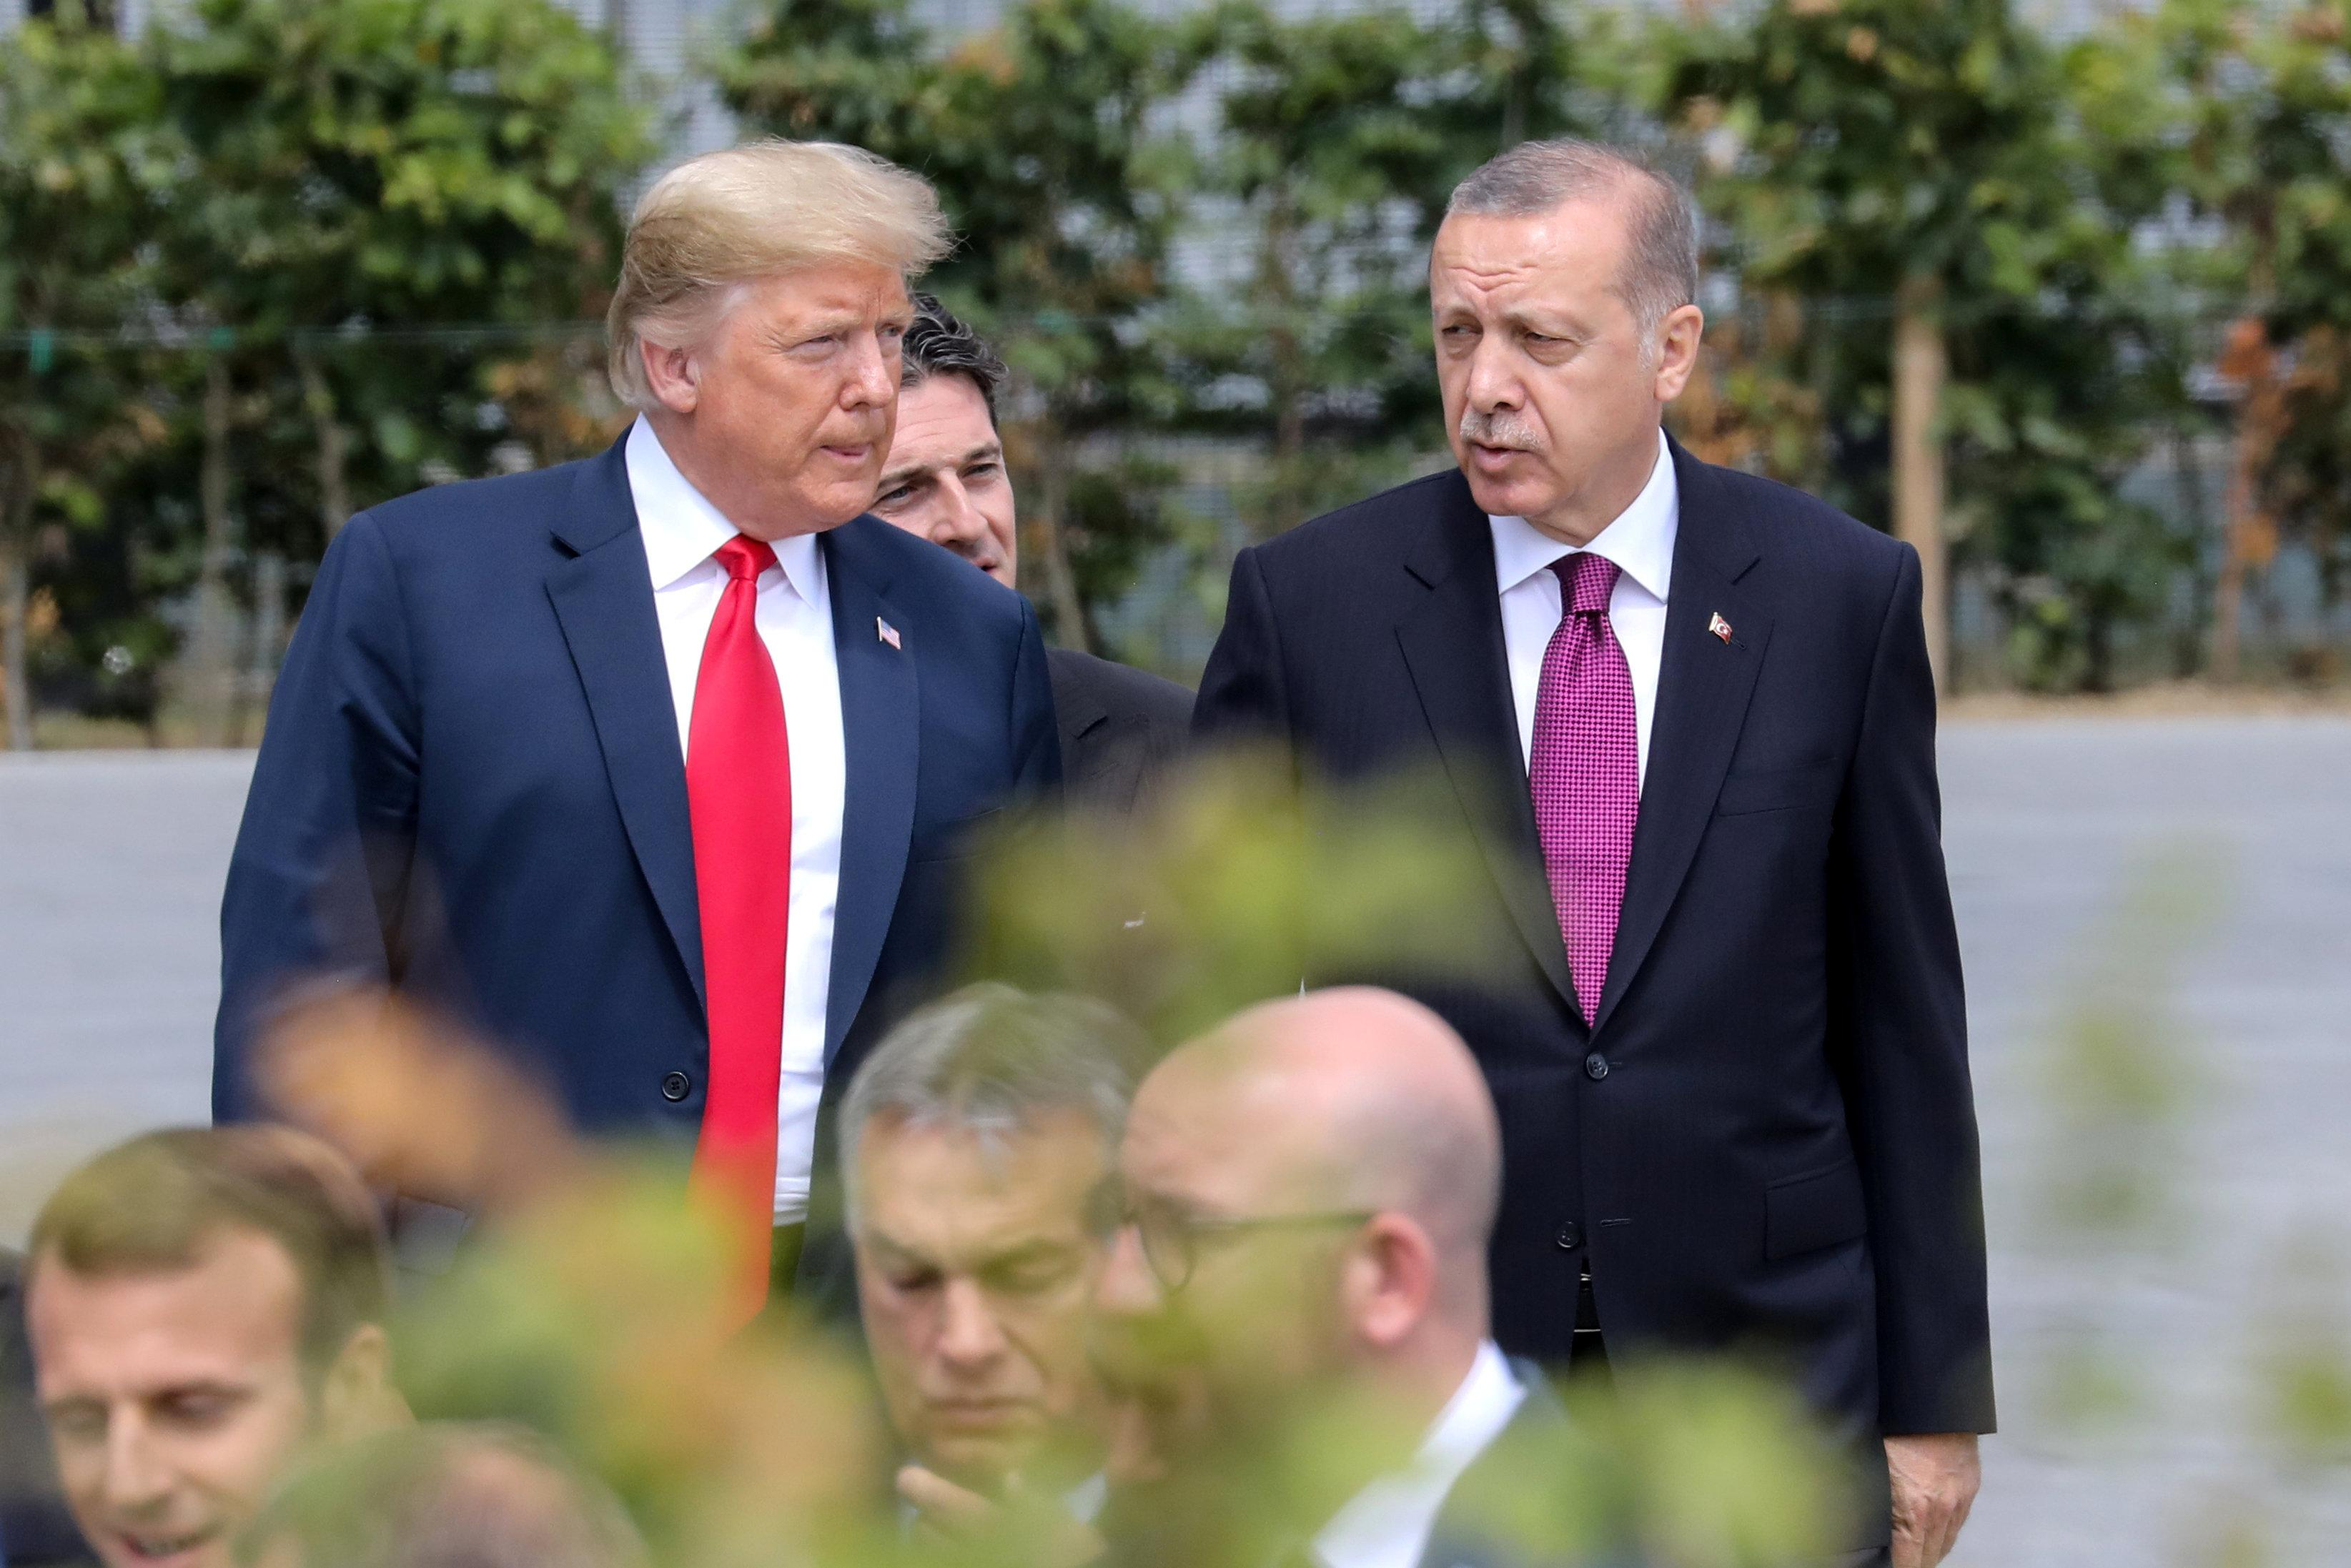 U.S. President Donald Trump speaks withh Turkey's President Tayyip Erdogan ahead of the opening ceremony of the NATO (North Atlantic Treaty Organization) summit, at the NATO headquarters in Brussels, Belgium, July 11, 2018.  Ludovic Marin/Pool via